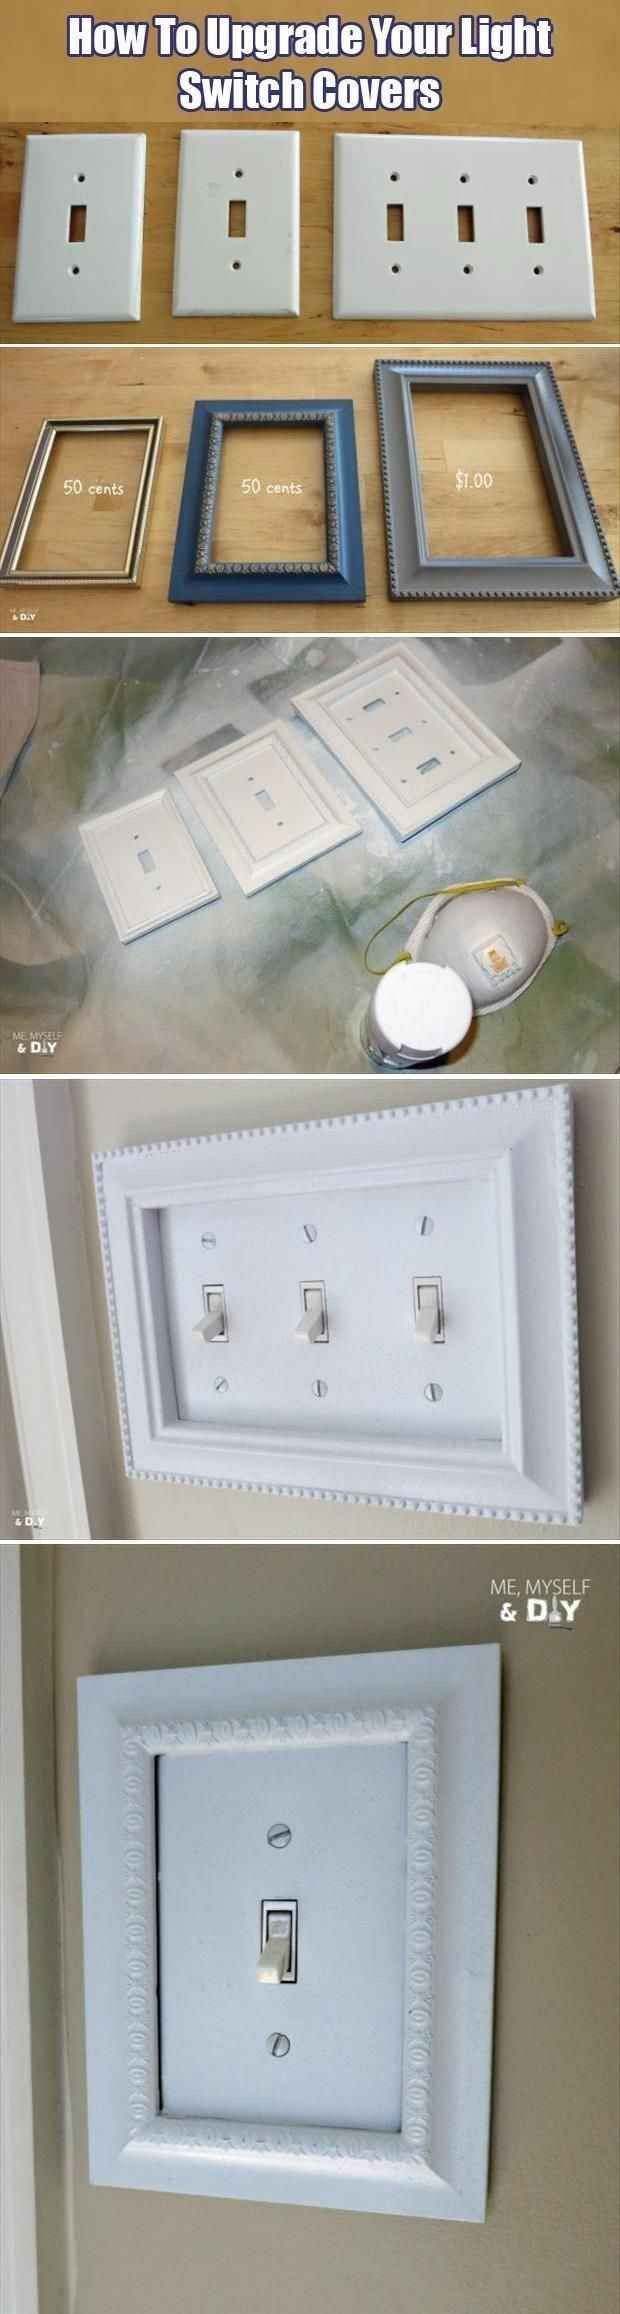 Love almost all of these ideas! A must do once we move in